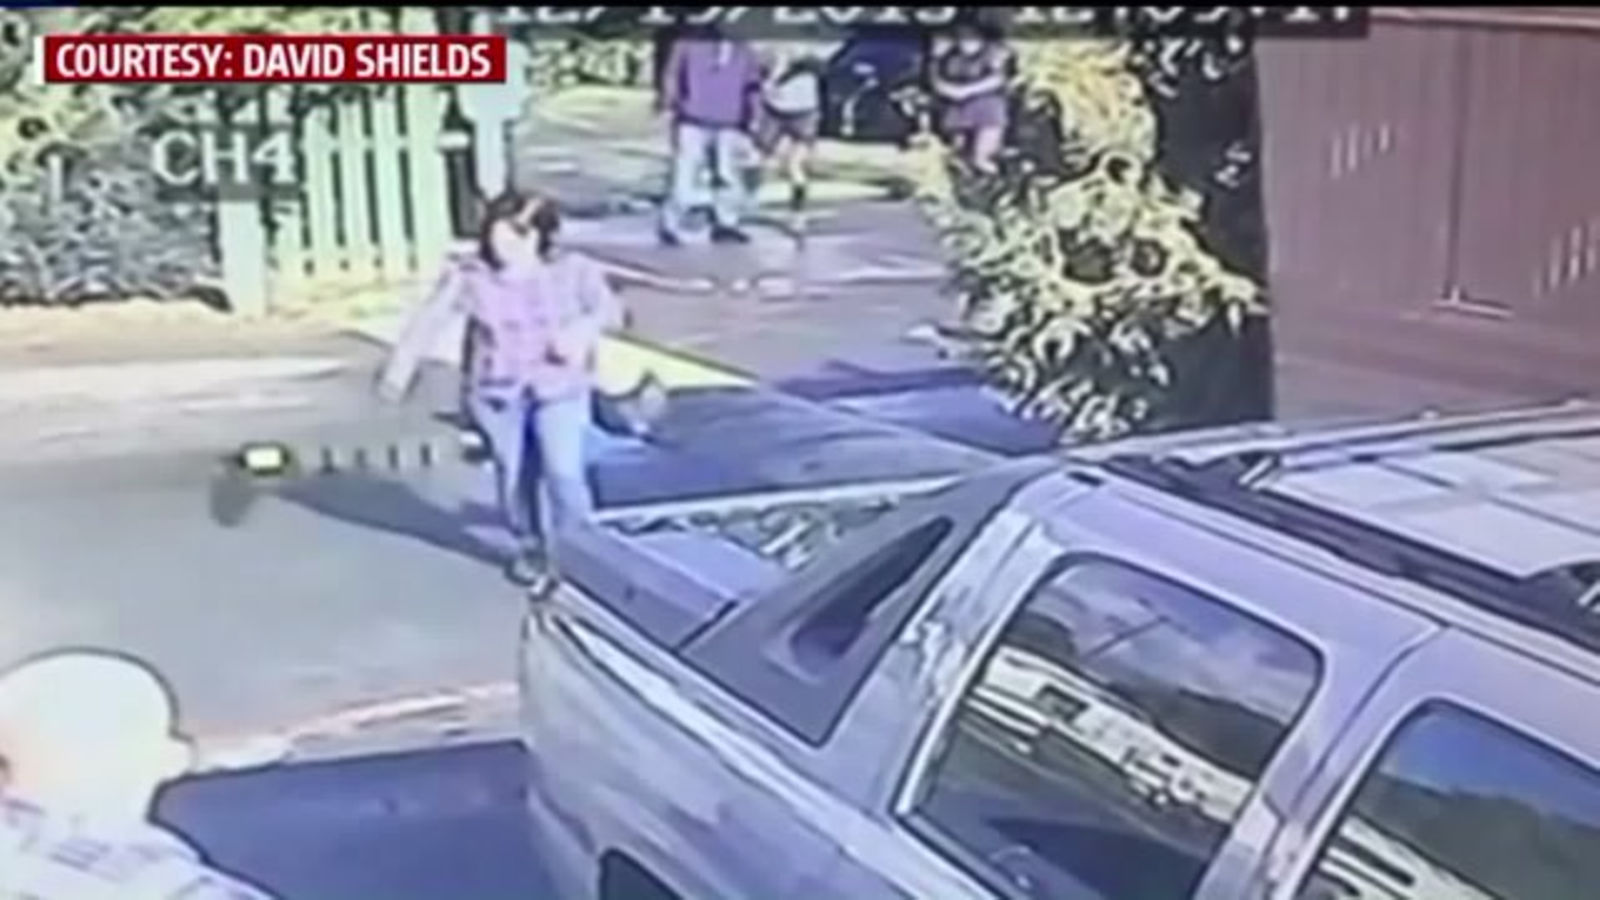 Cartoon character smedley the dog courts at fairfield - Police Search For Fairfield Woman Seen Throwing Dog In Viral Video La Times